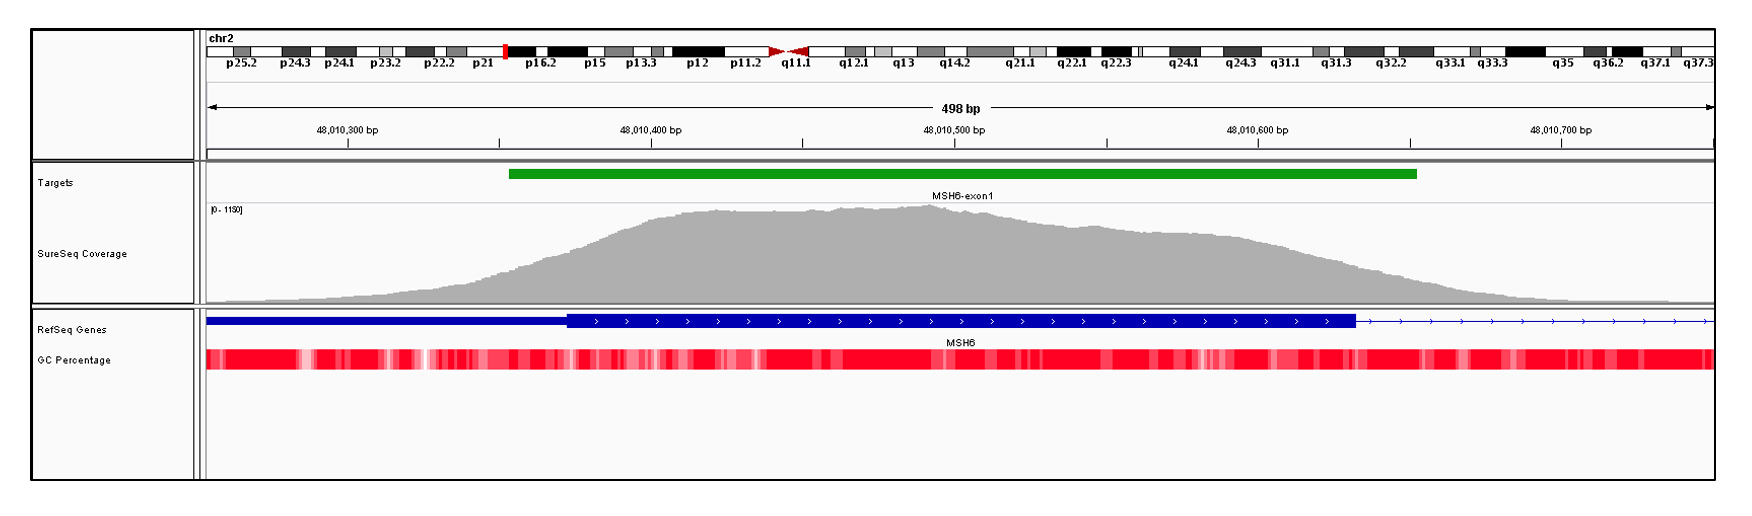 MSH6 Exon 1 (hg19 chr2:48010221-48010632). Depth of coverage per base (grey). Targeted region (green). Gene coding region as defined by RefSeq (blue). GC percentage (red). Image